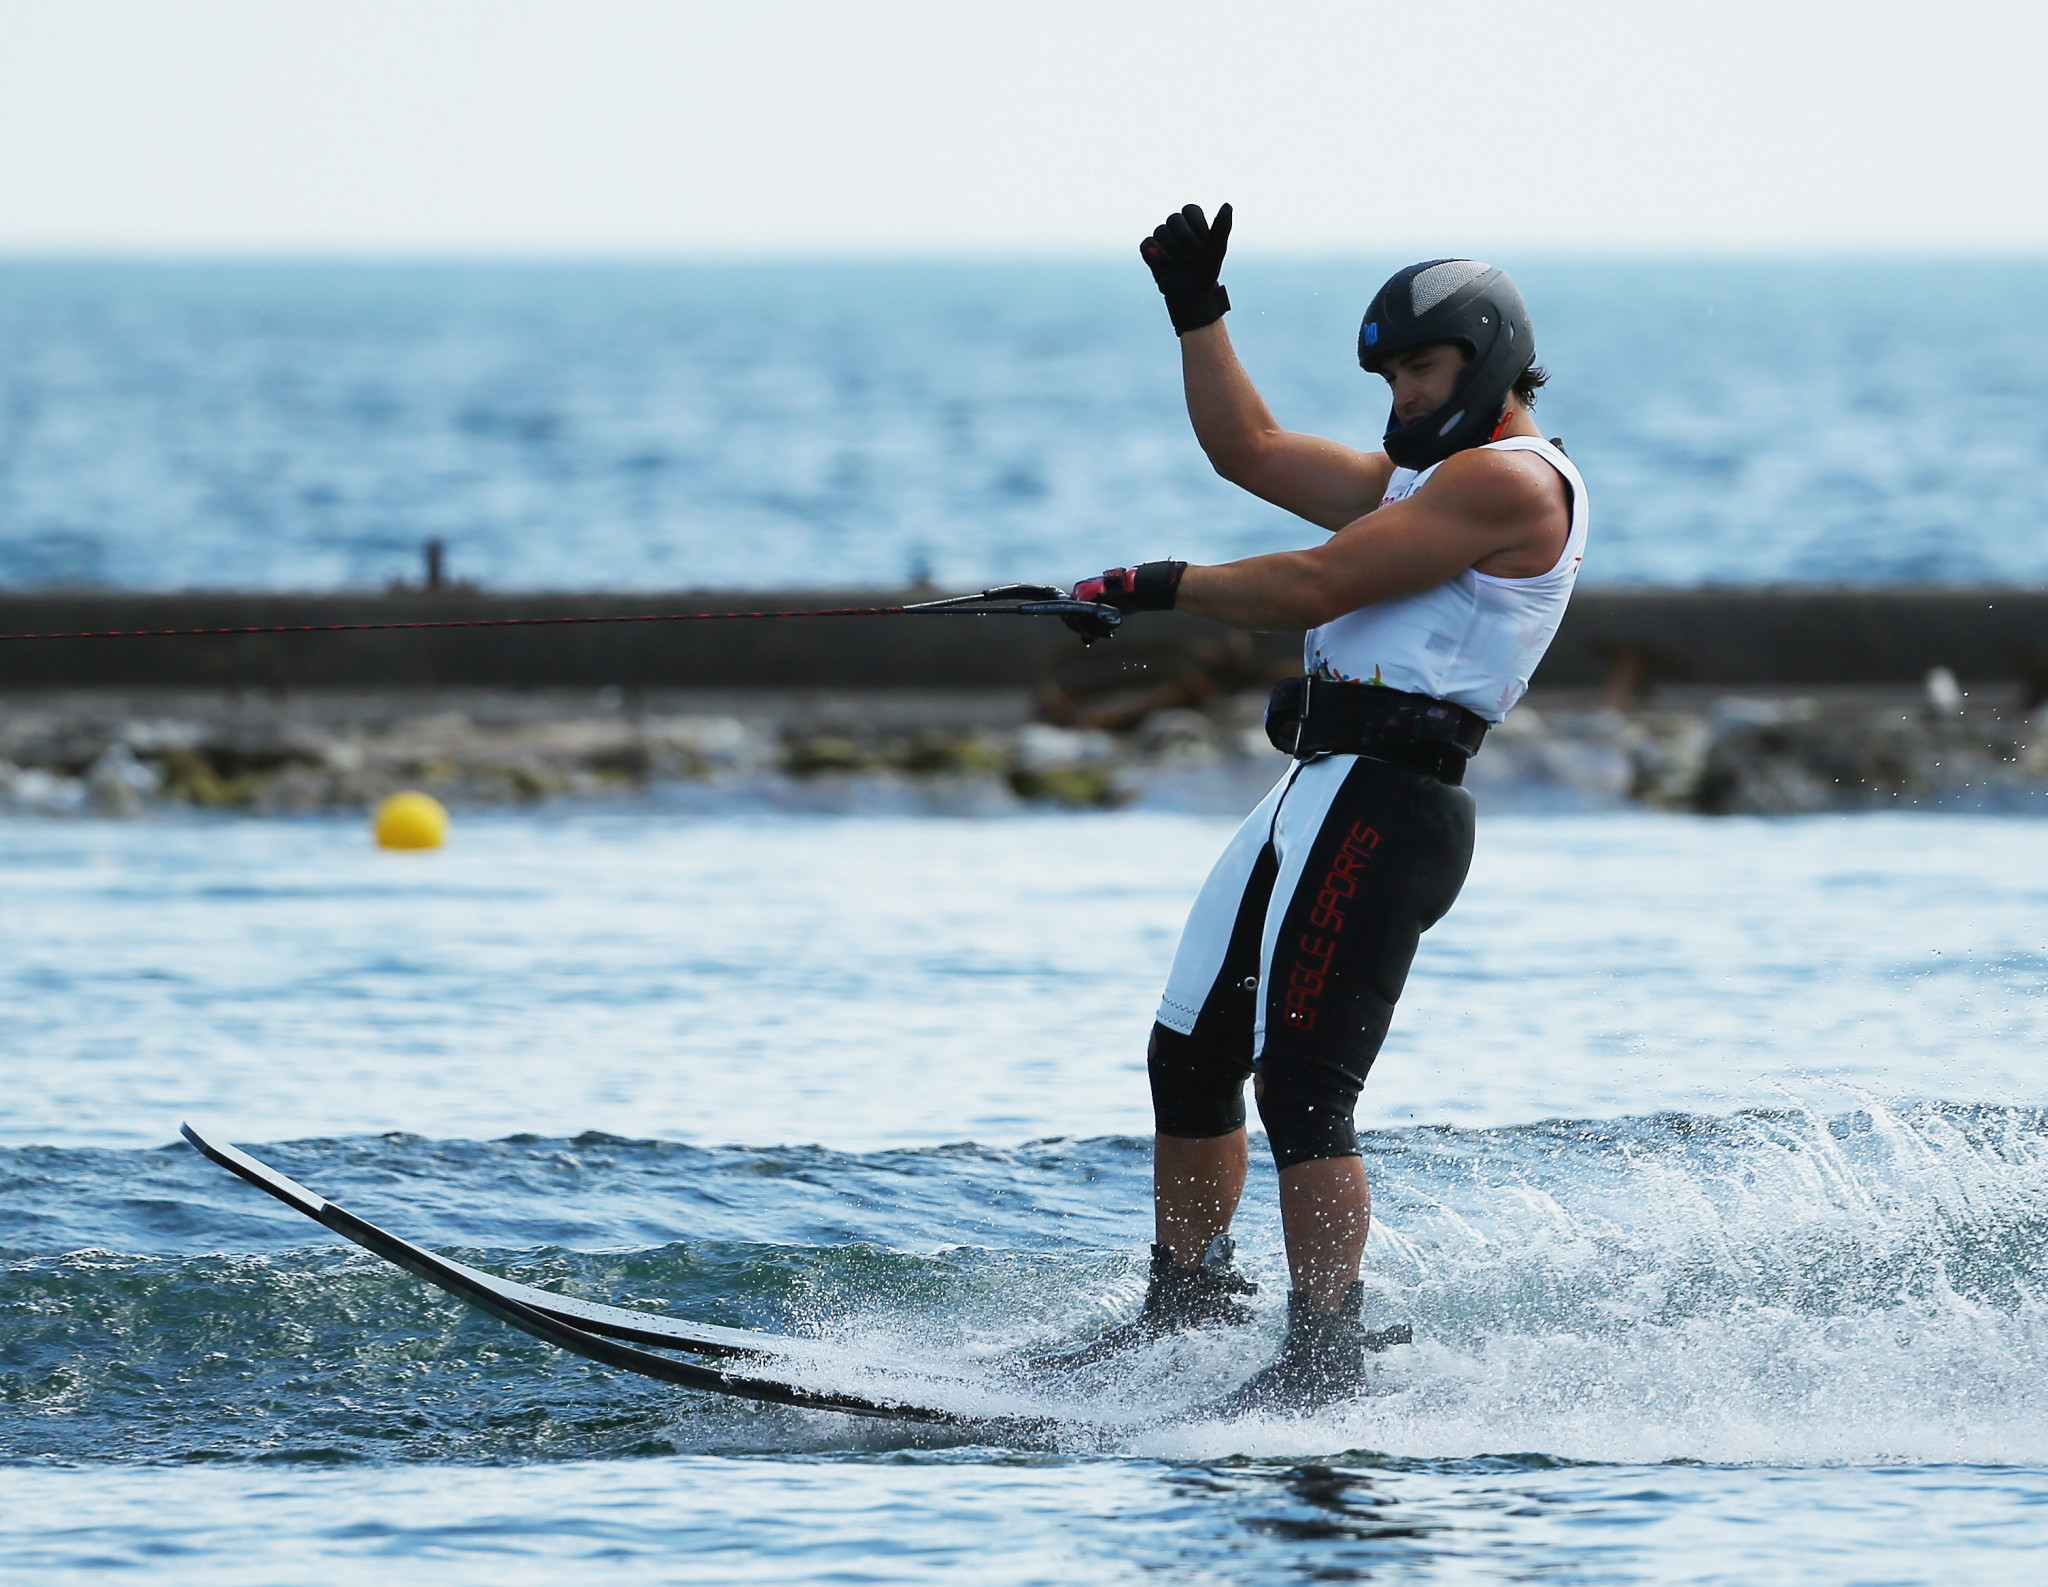 Carroll and Dodd continue dominance at IWWF World Waterski Championships as both retain titles